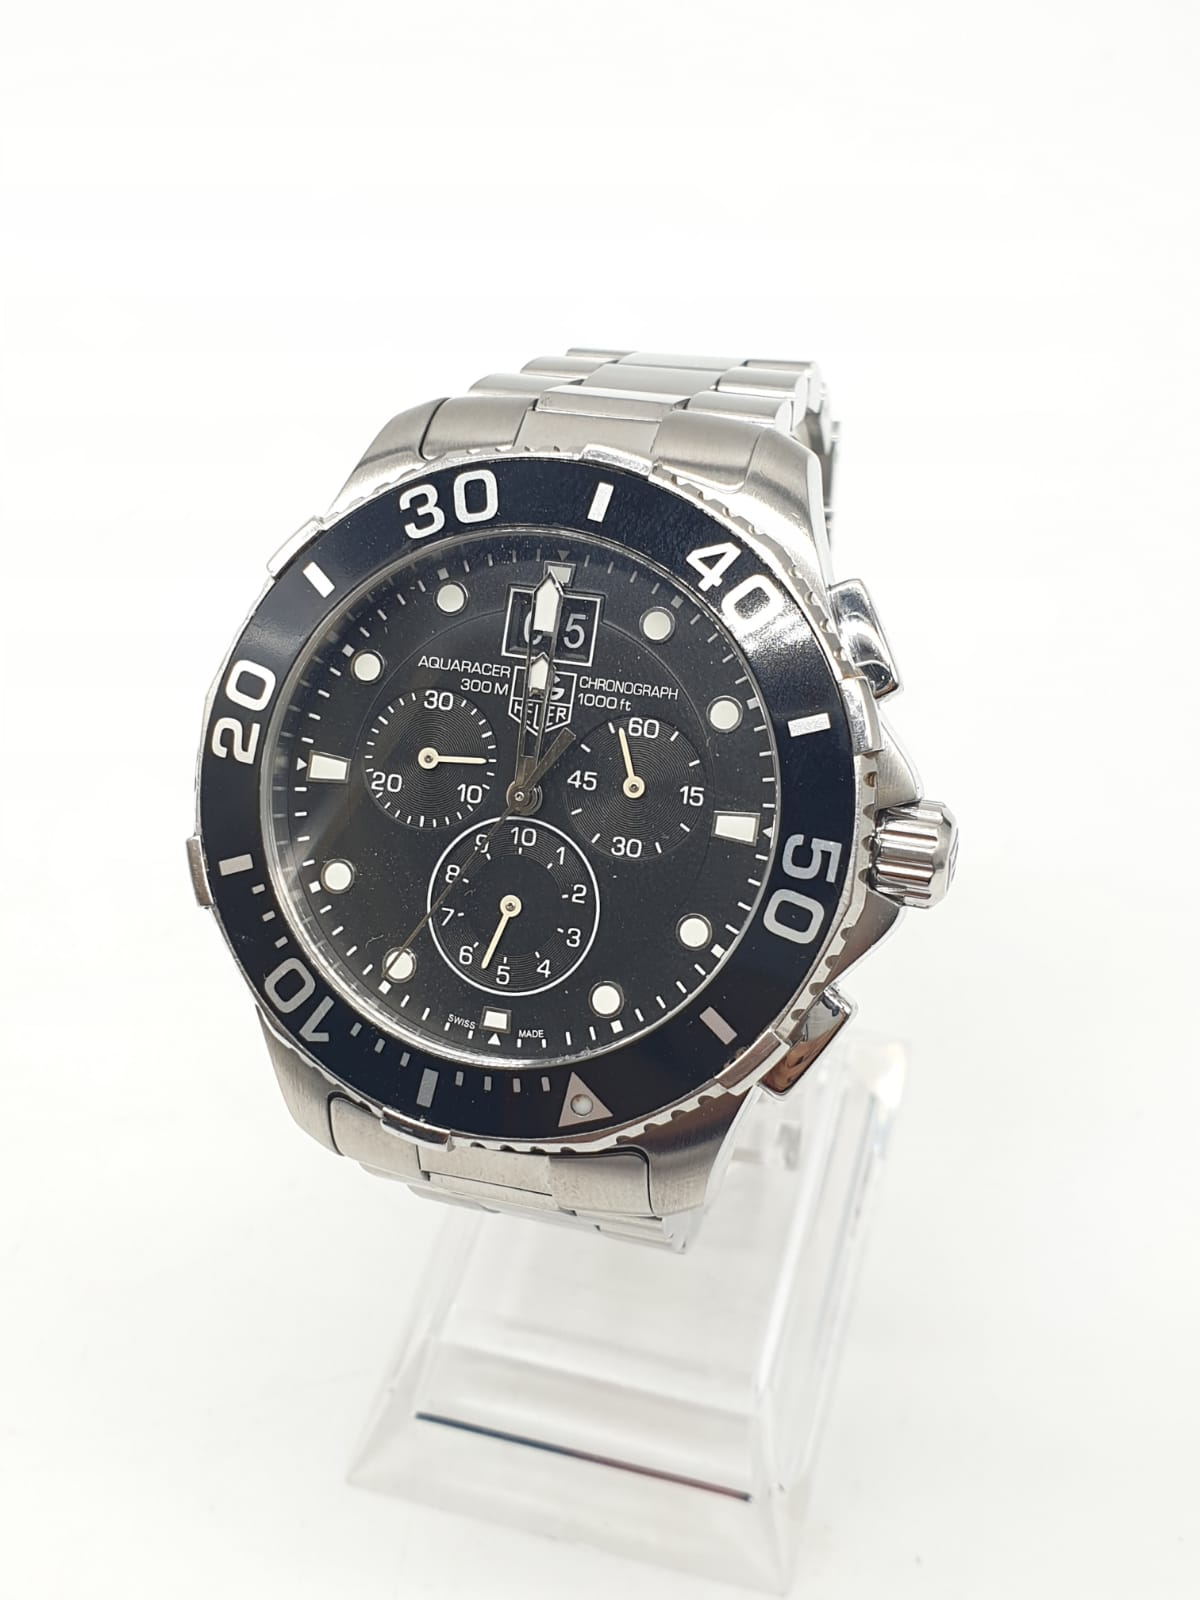 Tag Heuer gents chronograph Aquaracer watch, black face twisted bezel and steel strap, 44mm case - Image 3 of 14